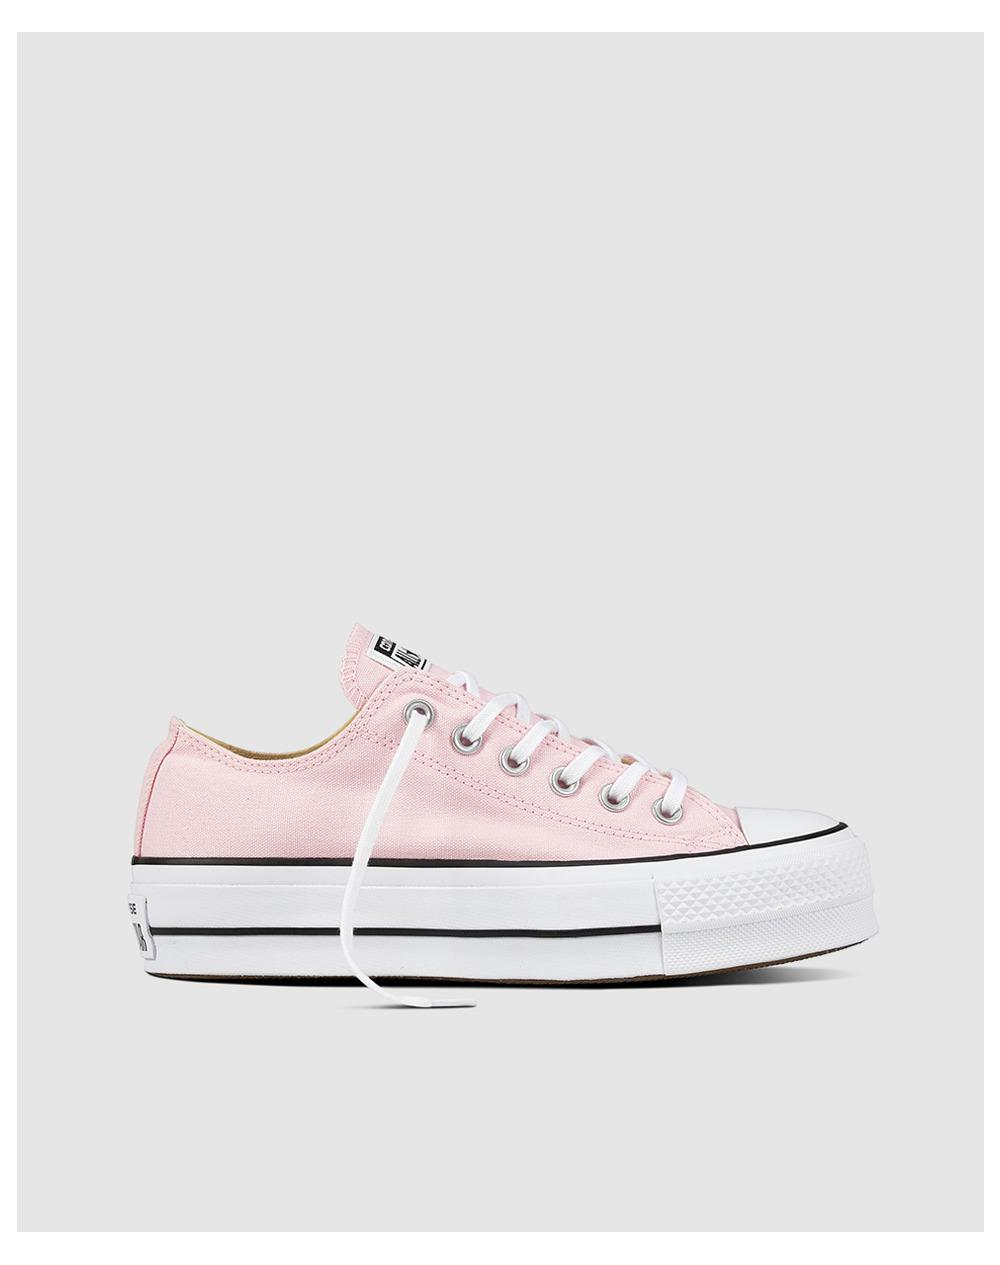 Converse Chuck Taylor All Star Platform Trainers In Pink sale top quality outlet sast outlet comfortable qZWCRxc